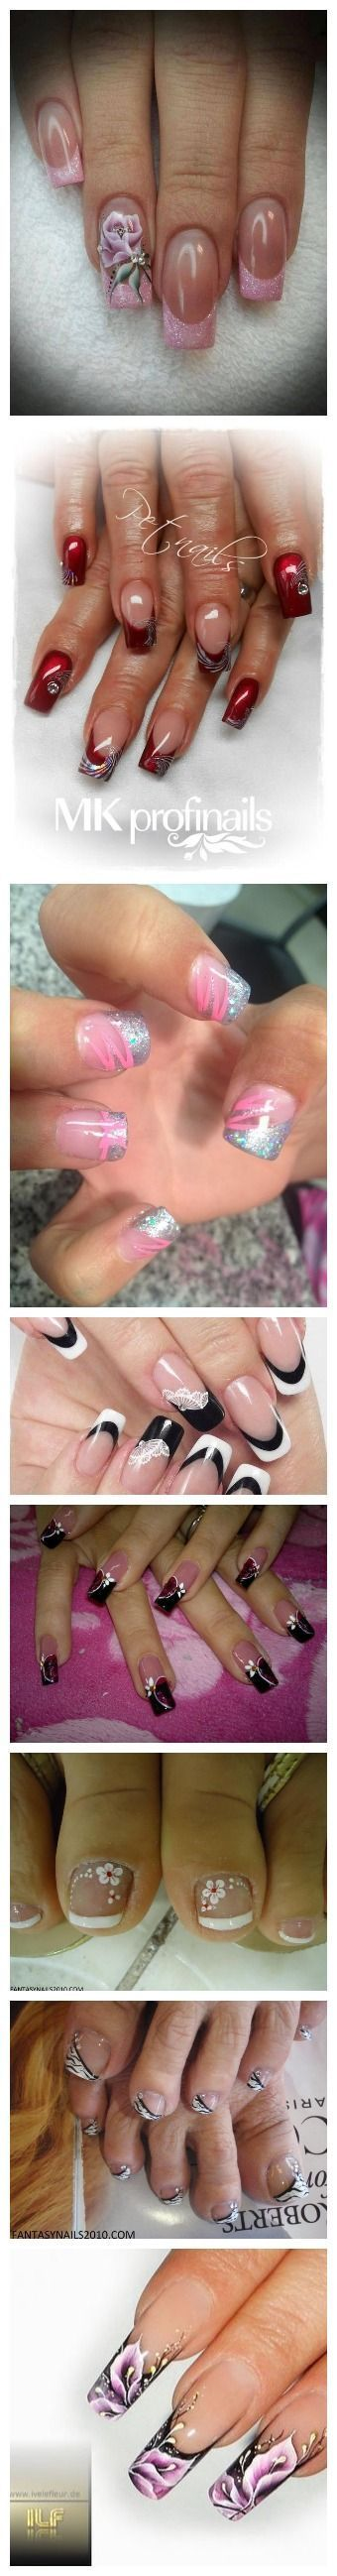 best unhas images on pinterest nail design cute nails and